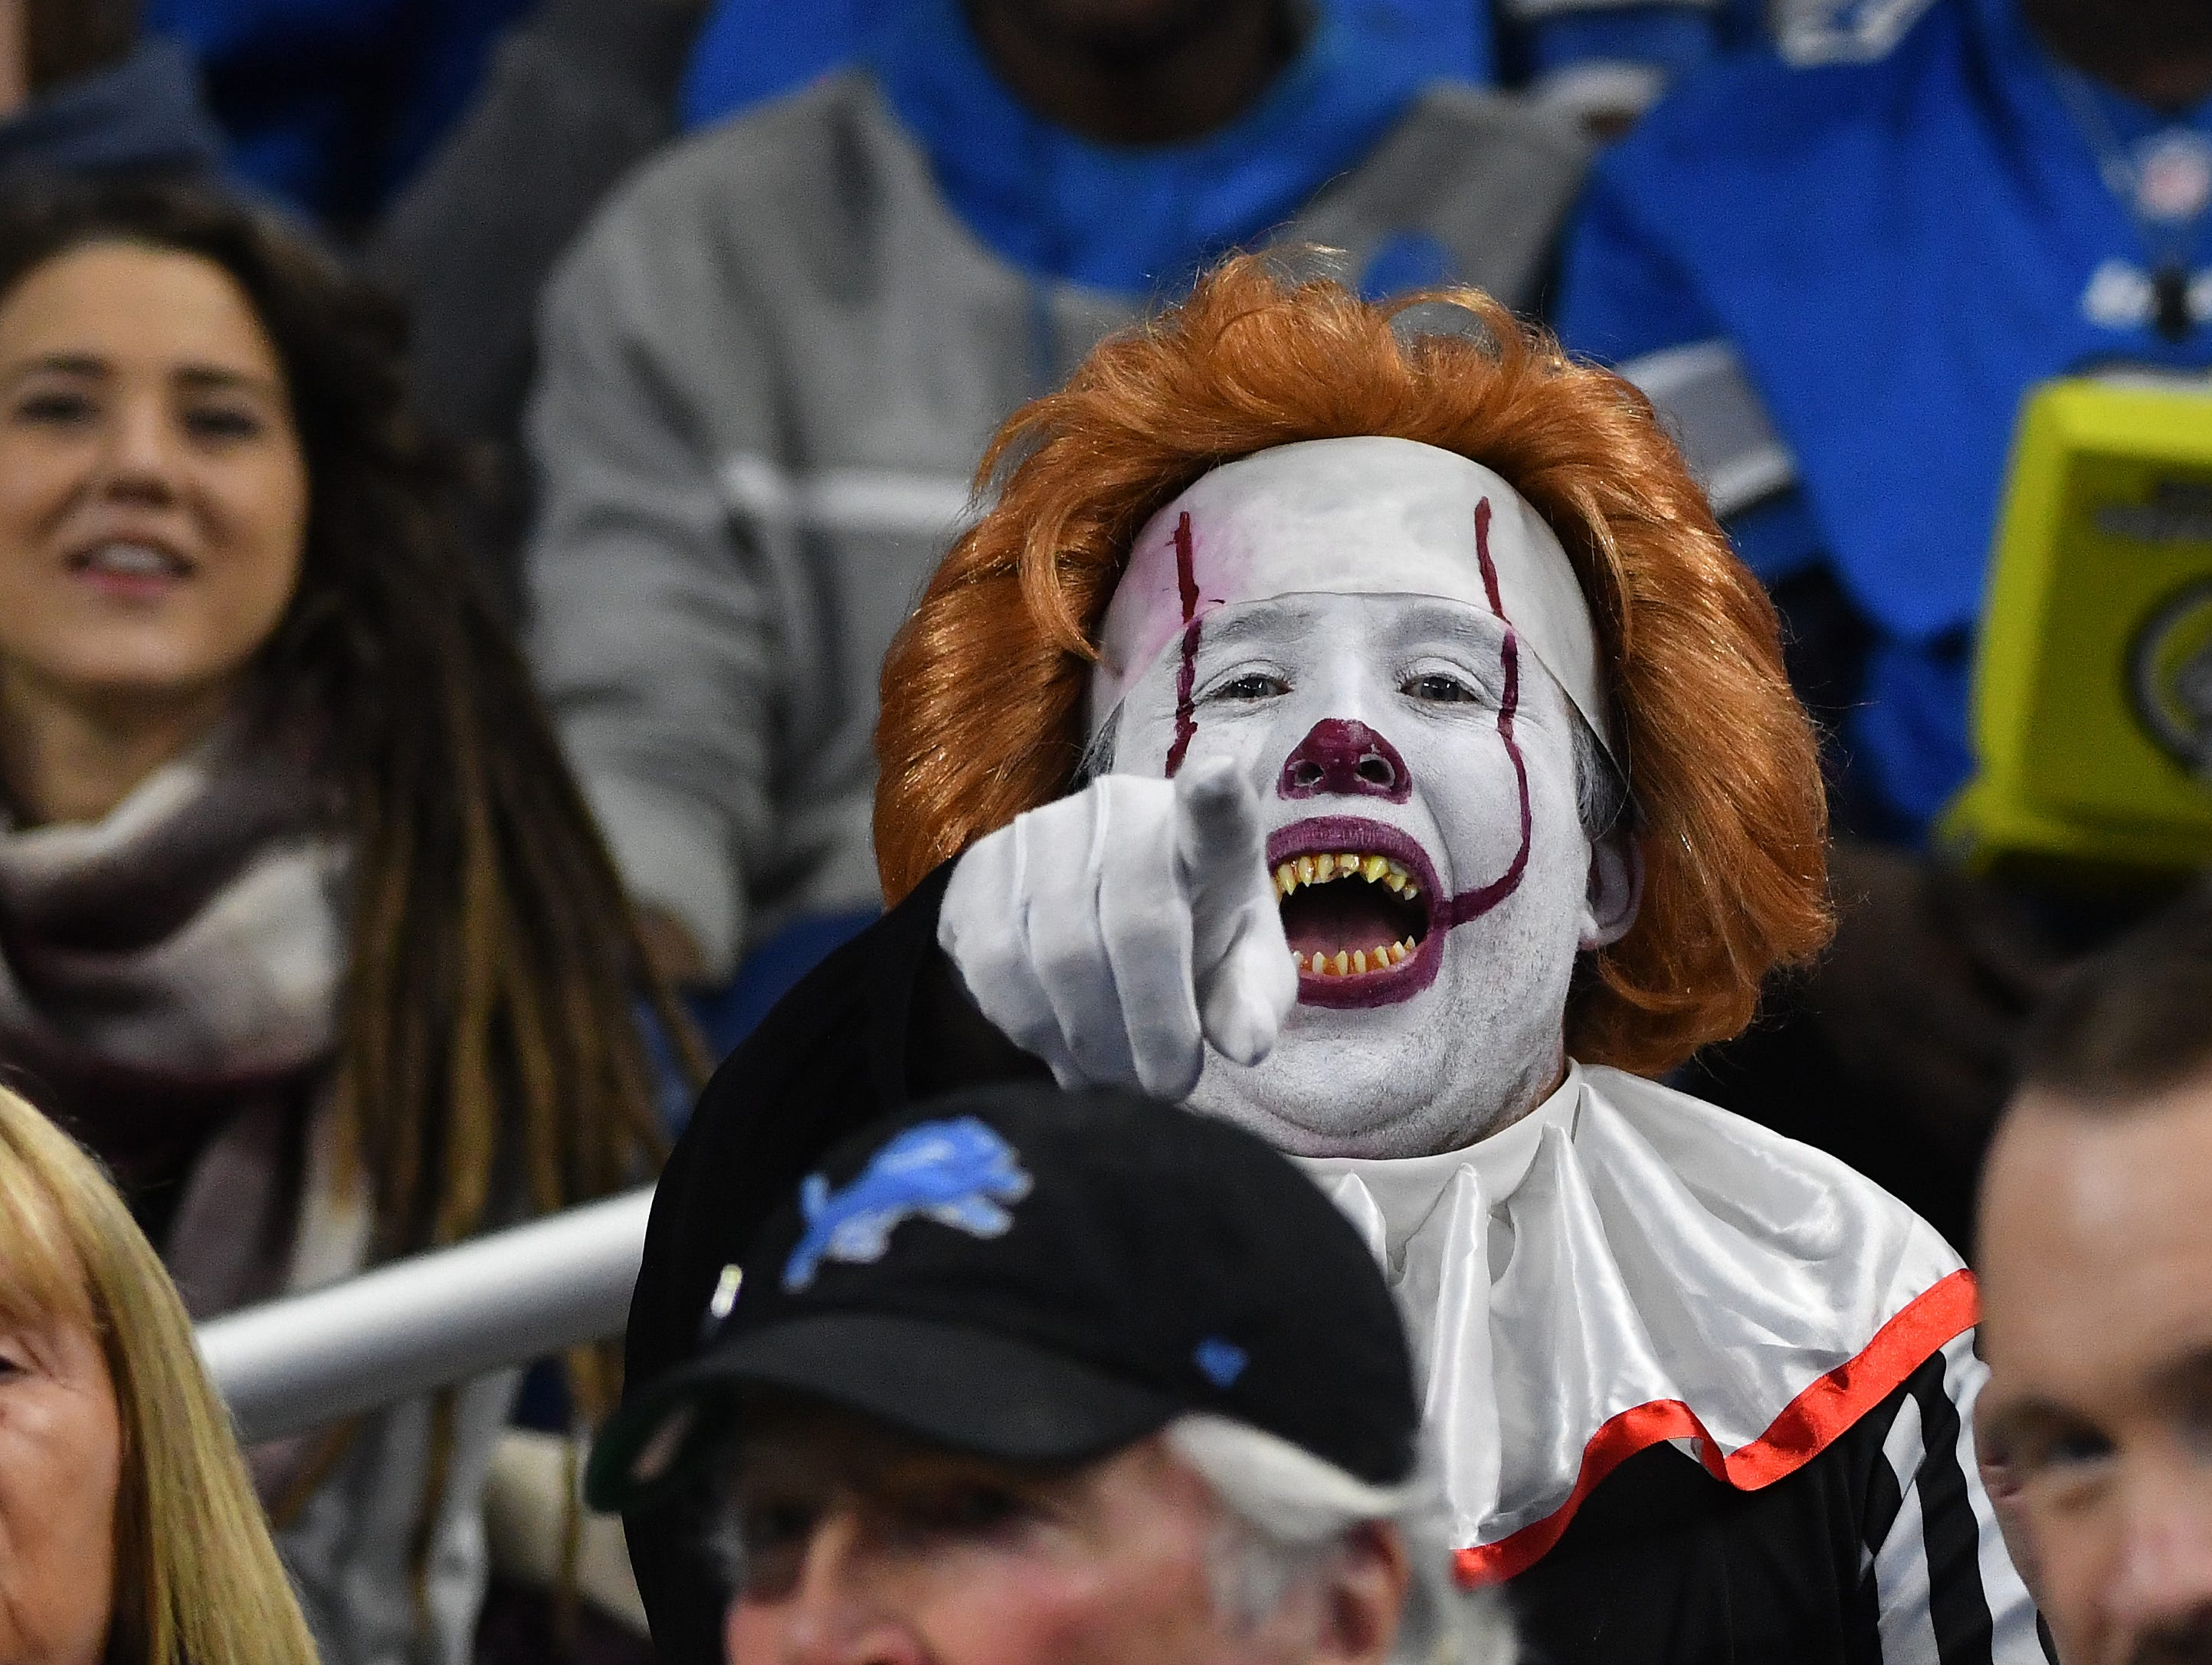 With next weeks Lions game in Minnesota, Detroit fans put their Halloween customers on a week early, which worked well during this scary Detroit loss to Seattle.